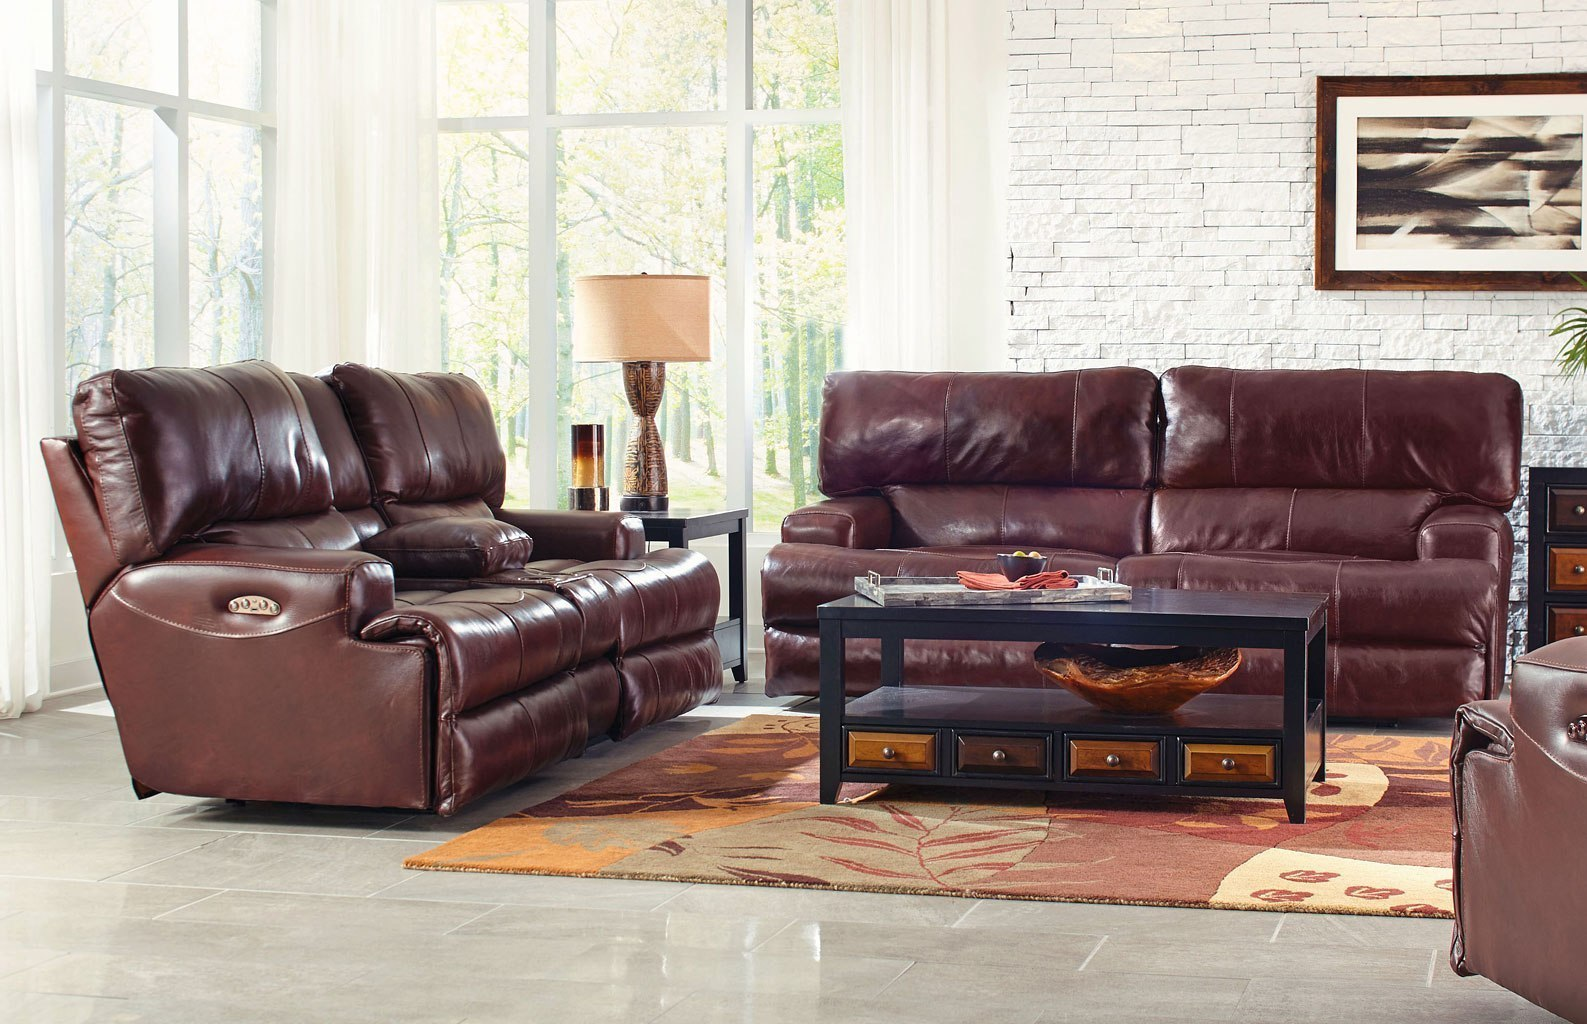 Stupendous Wembley Power Lay Flat Reclining Sectional Set W Power Headrests And Lumbar Walnut Pabps2019 Chair Design Images Pabps2019Com